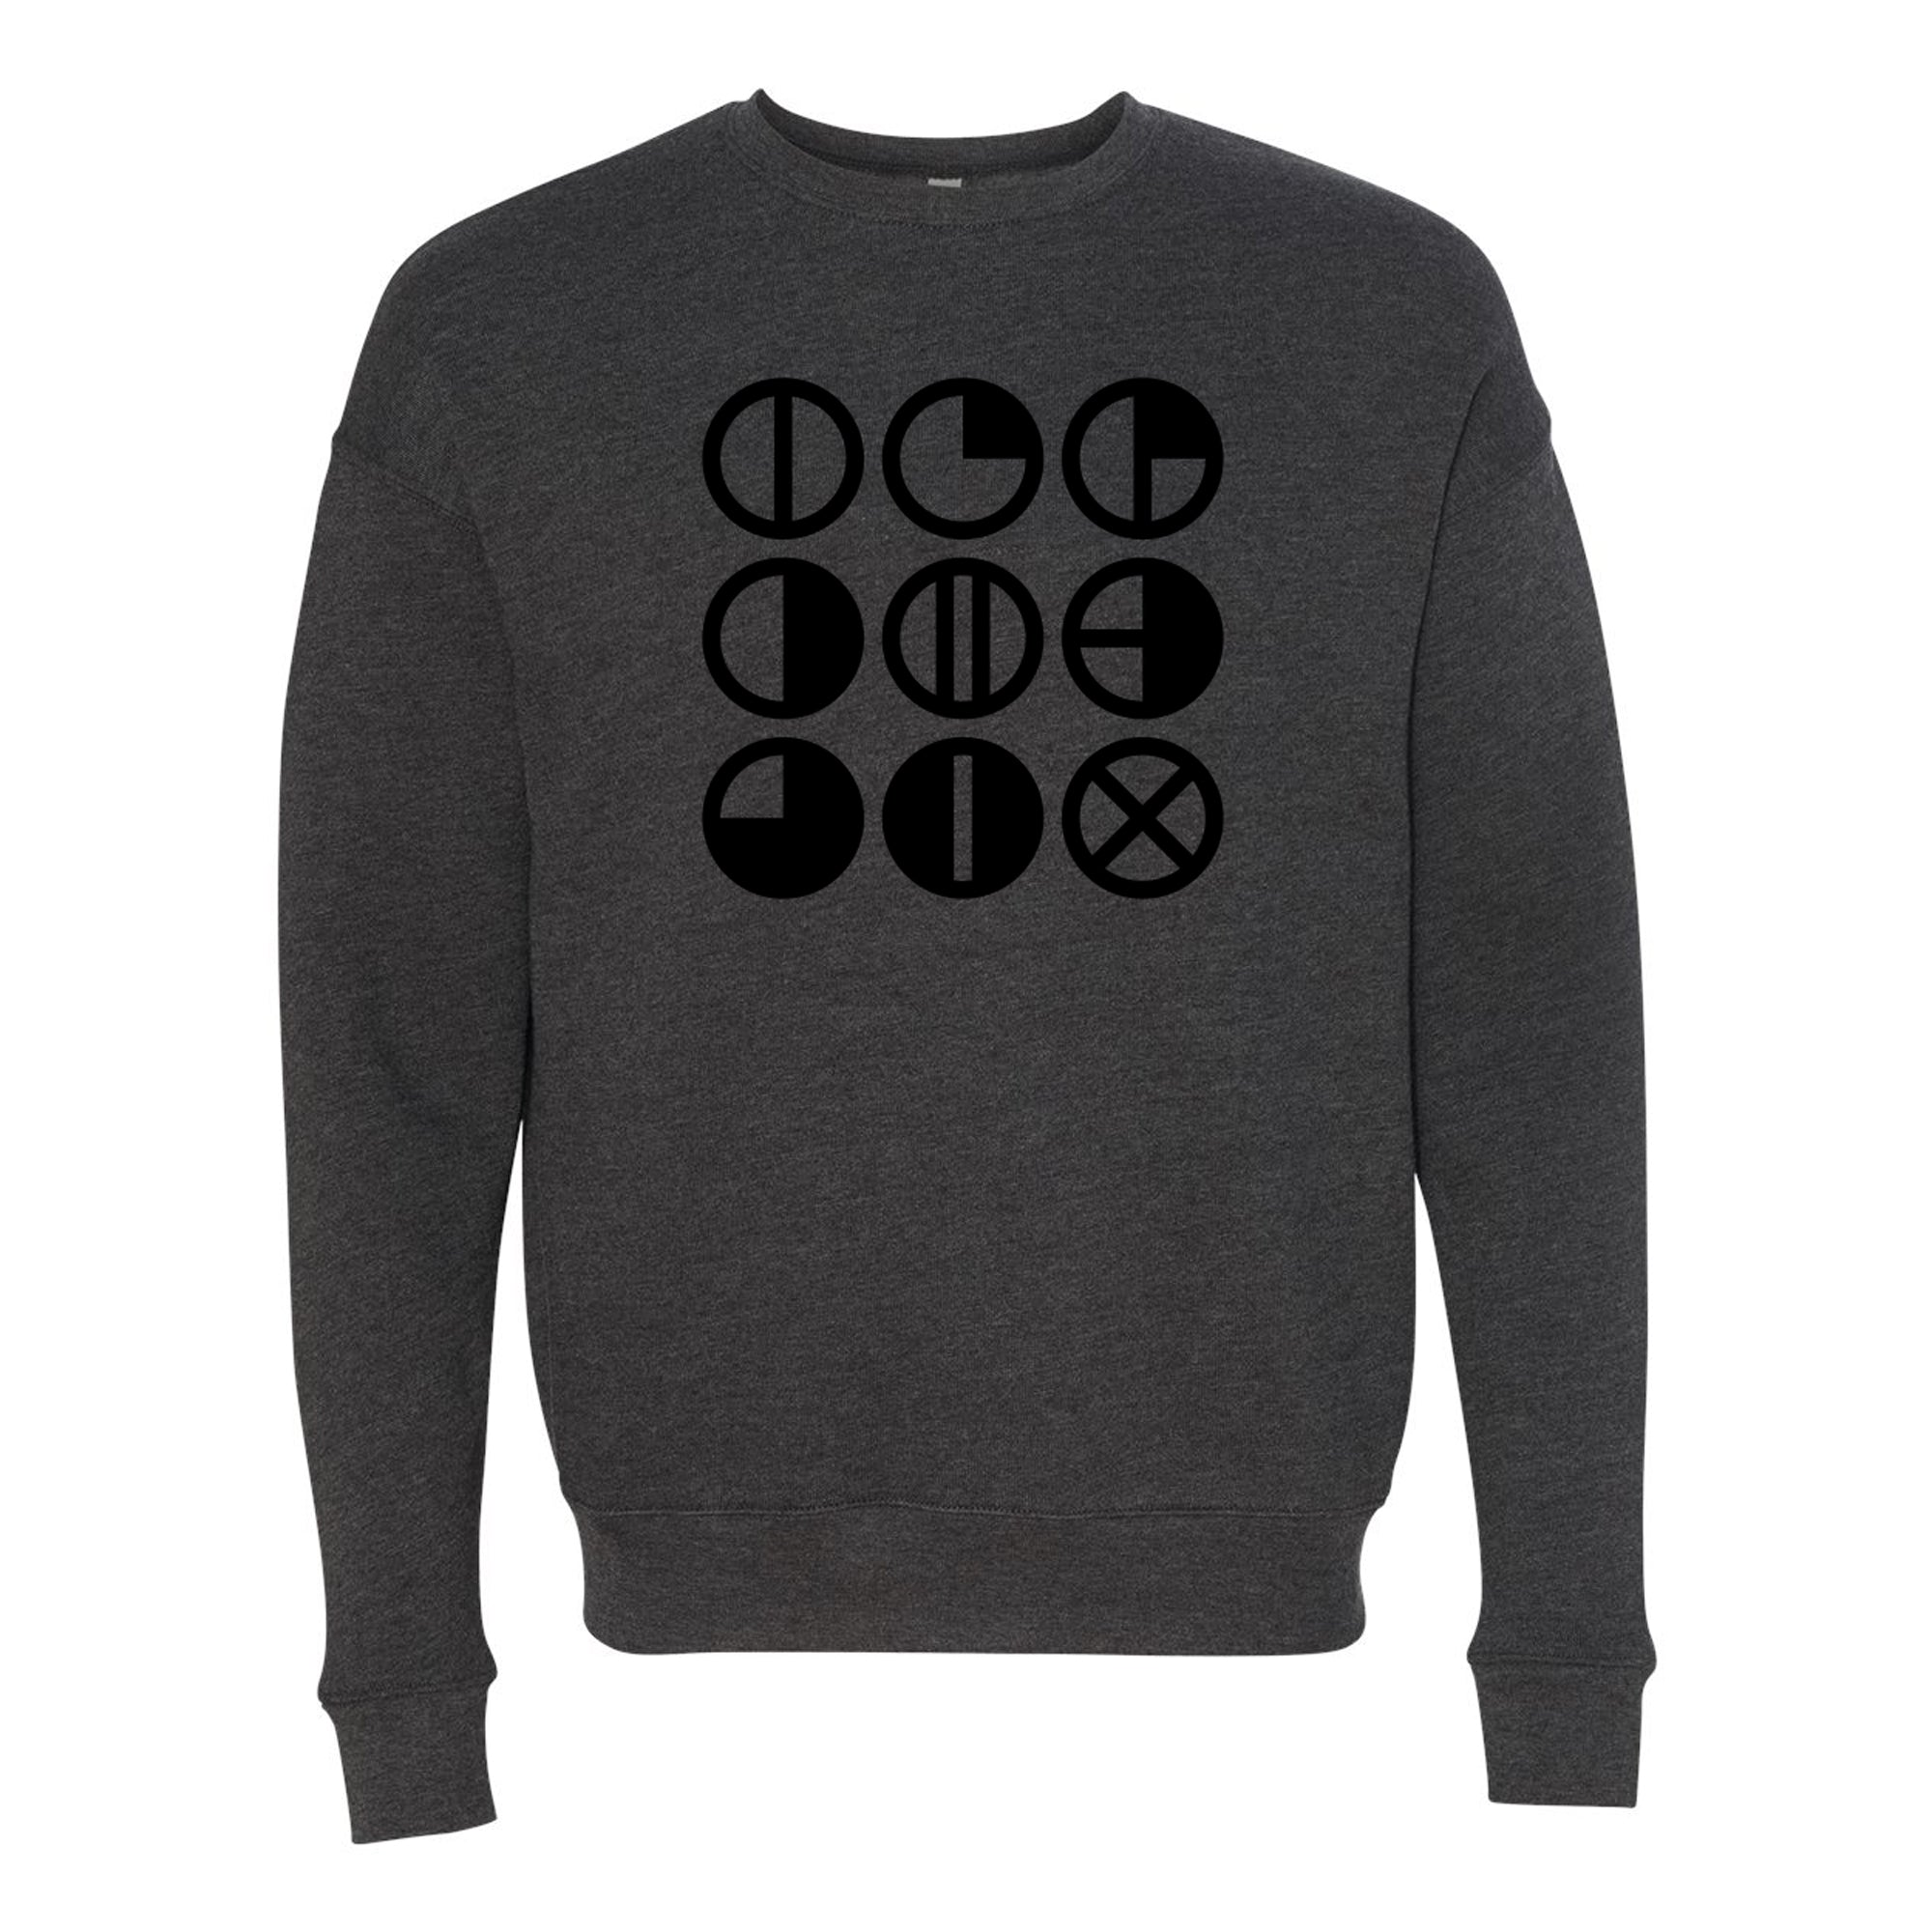 CLASSIC LOGO Sweatshirt - Dark Grey Heather